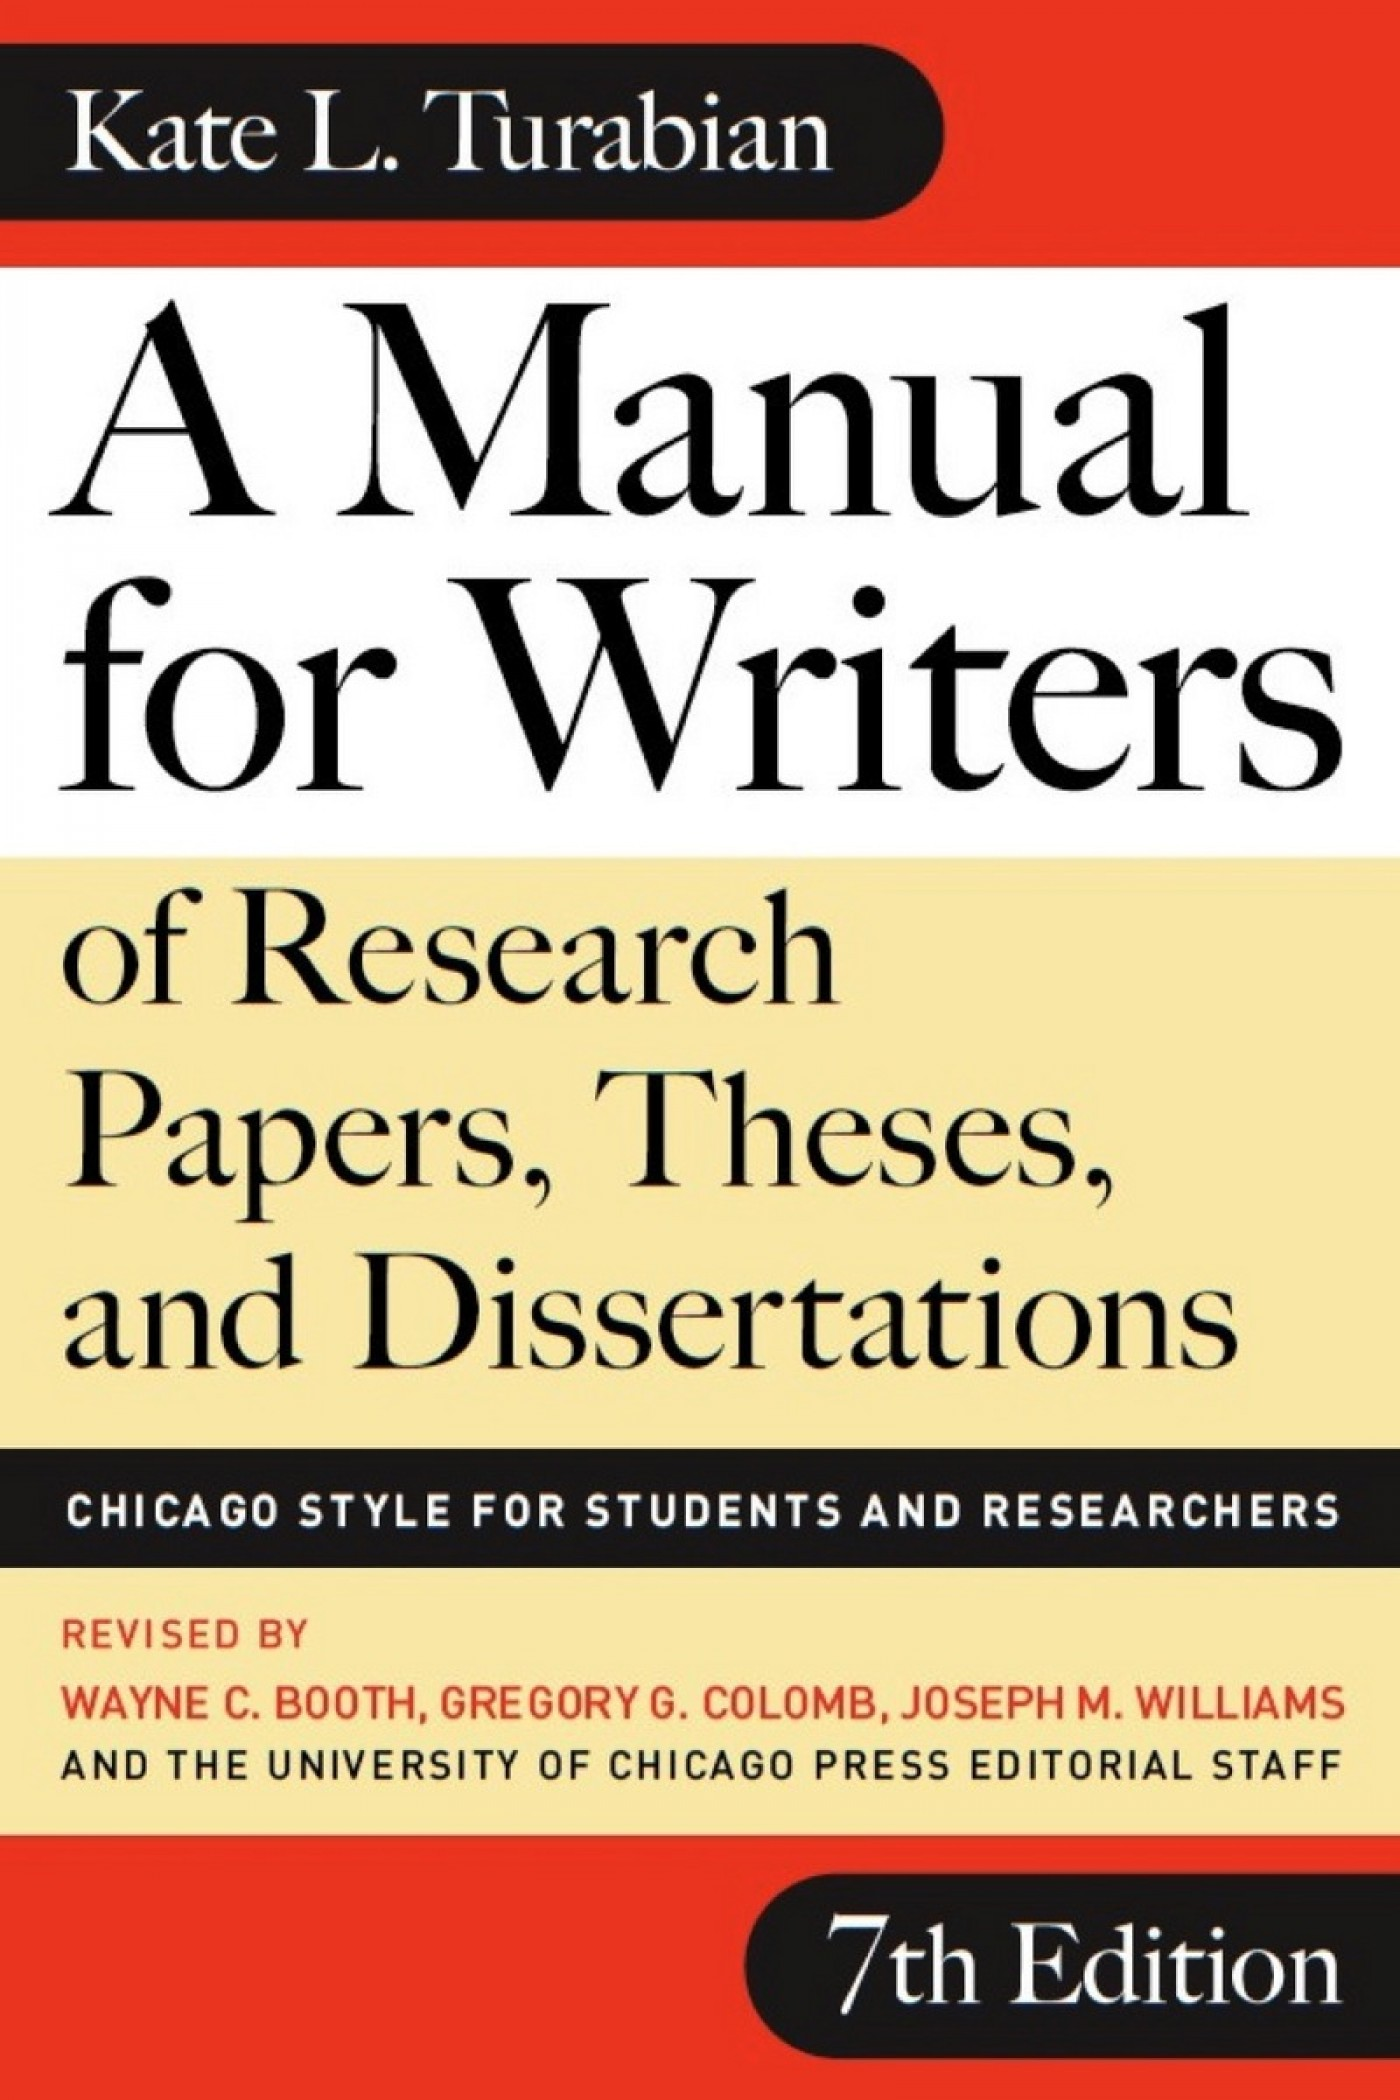 009 Research Paper Frontcover Manual For Writers Of Papers Theses And Sensational A Dissertations Ed. 8 8th Edition Ninth Pdf 1400